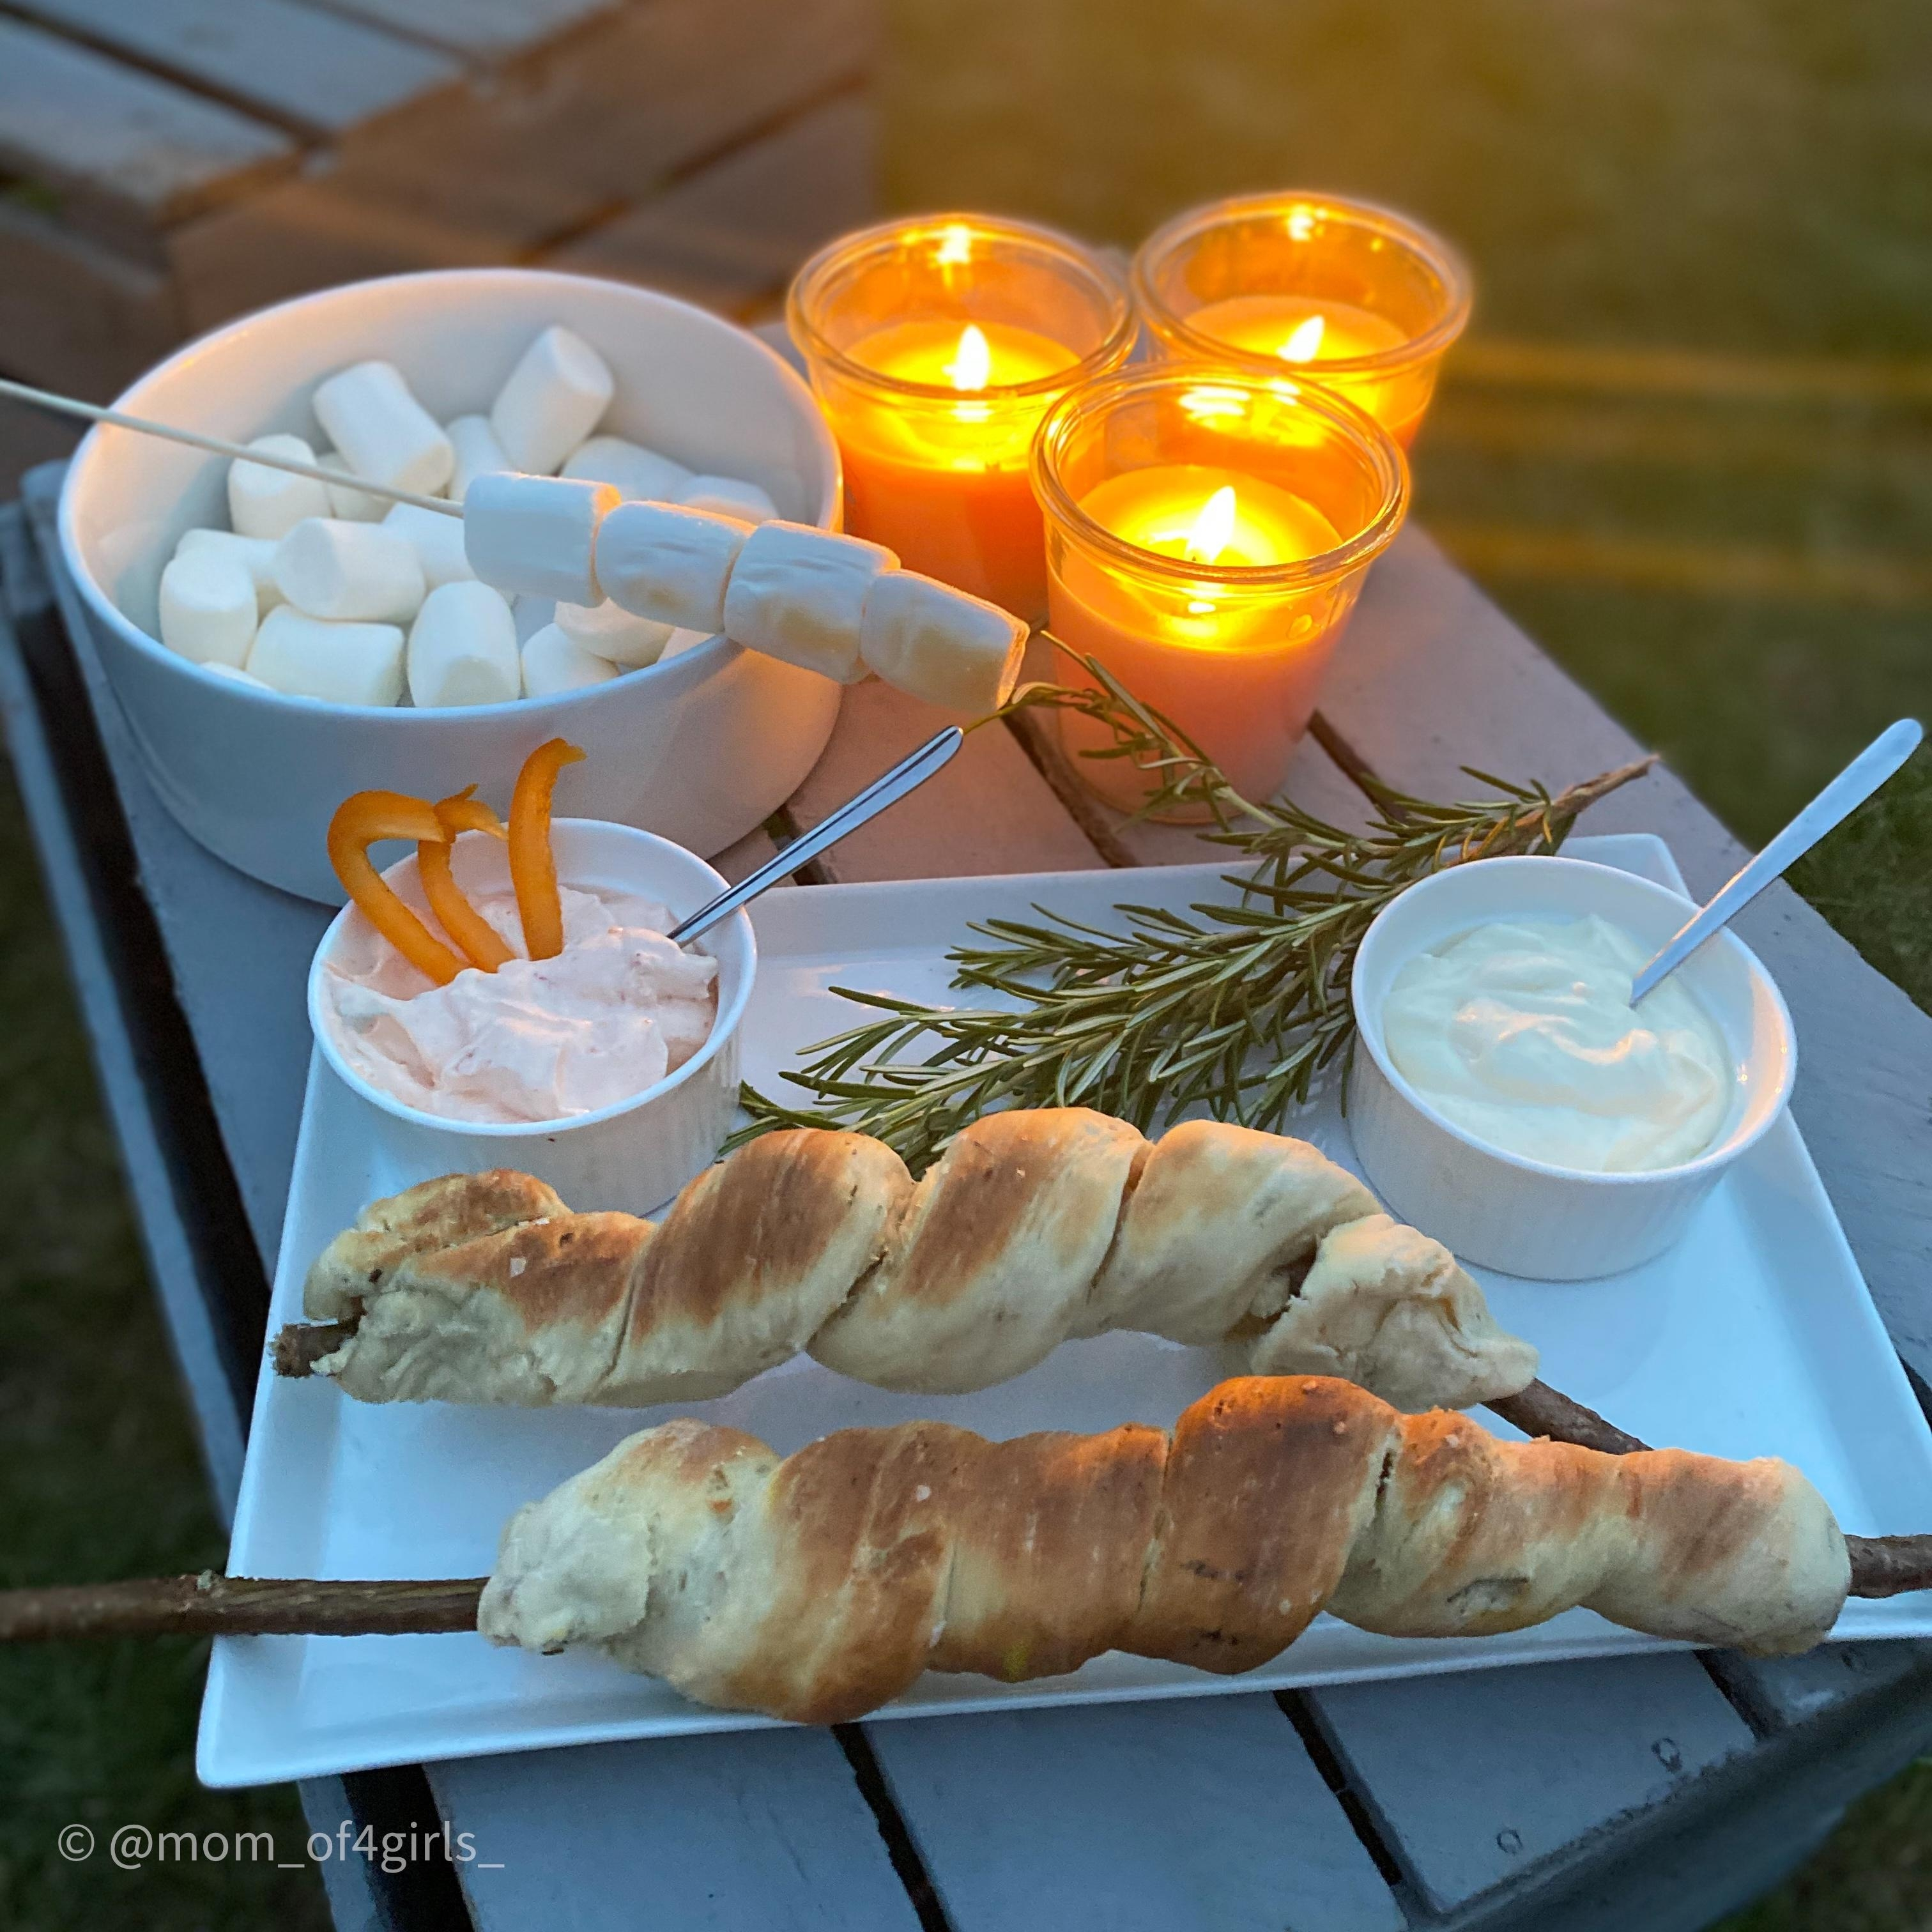 Stockbrot glamping glamnick grillen feuerstelle gartenliebe outdoorlife camping glampinglife  8295be9e a62a 4721 a44b 331fdf02b0c3